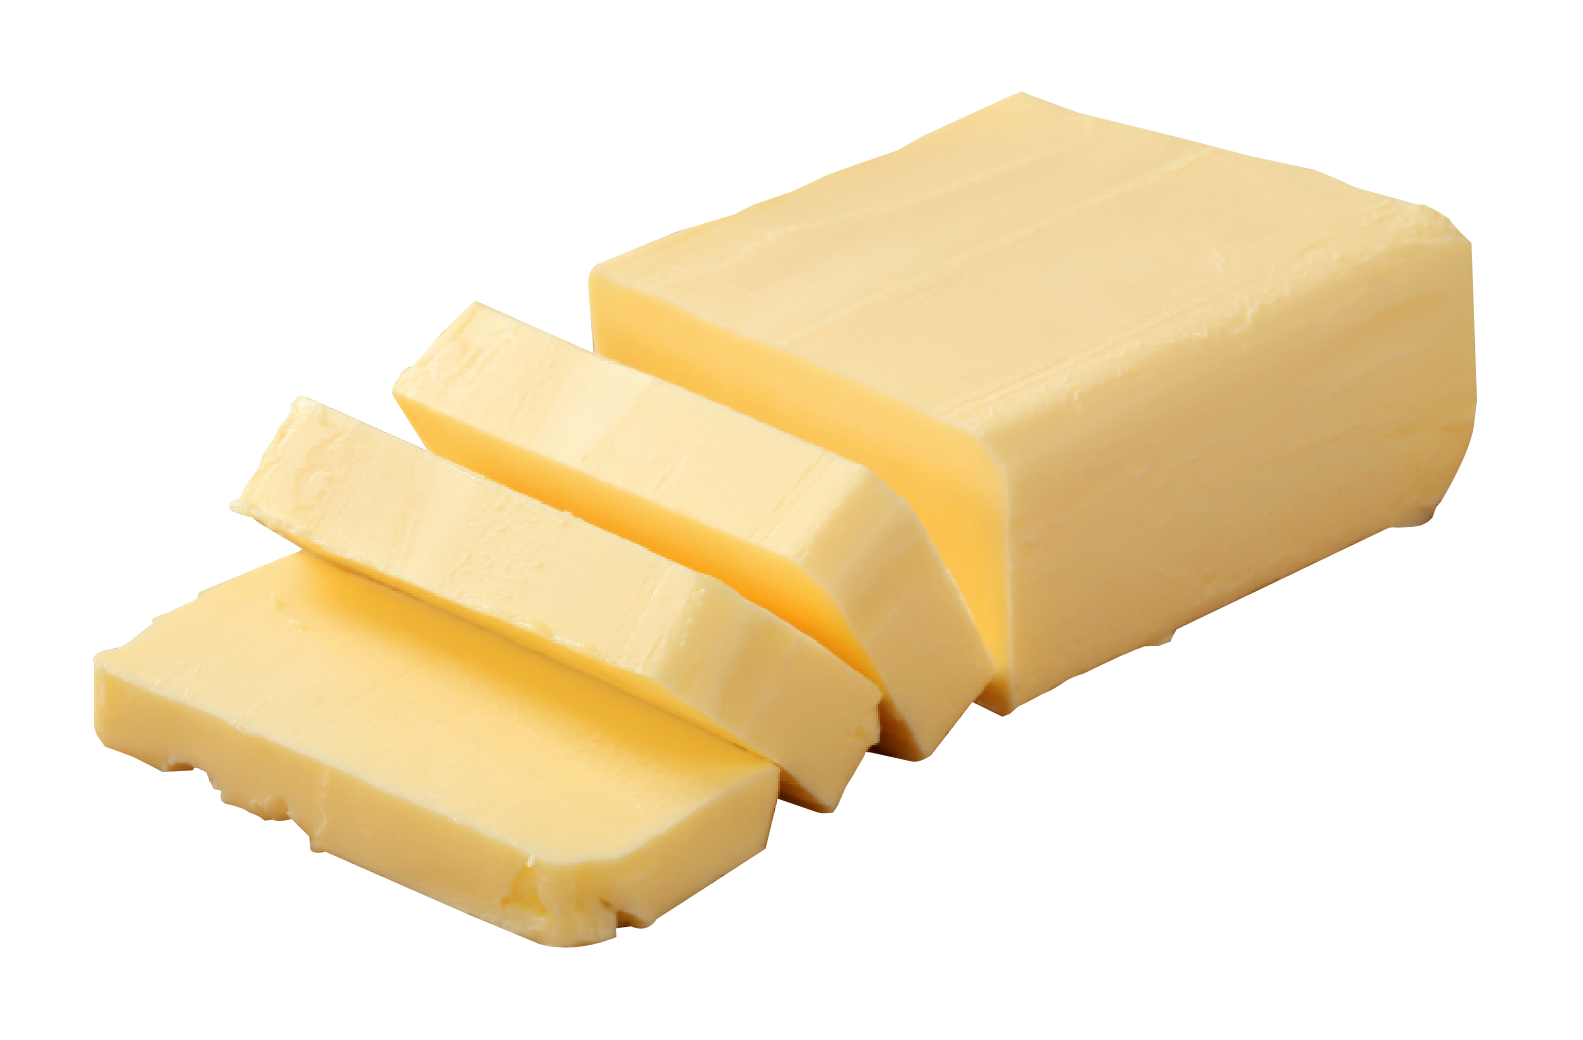 image library stock Stick of butter clipart. Png images free download.